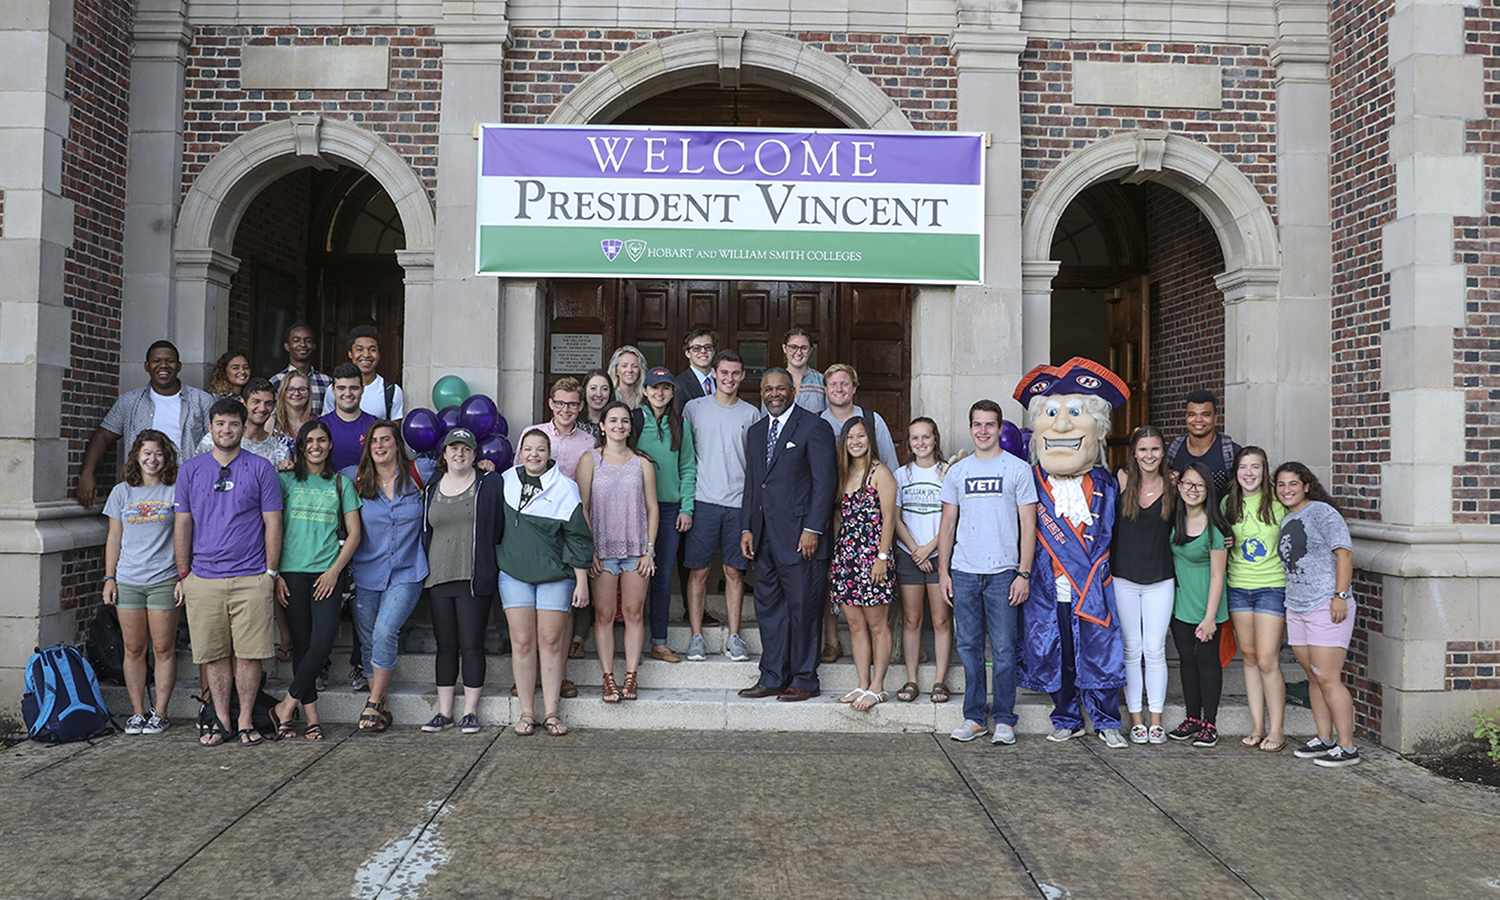 HWS President Gregory J. Vincent '83 gathers with students for a photo in front of Coxe Hall during his welcome to campus.